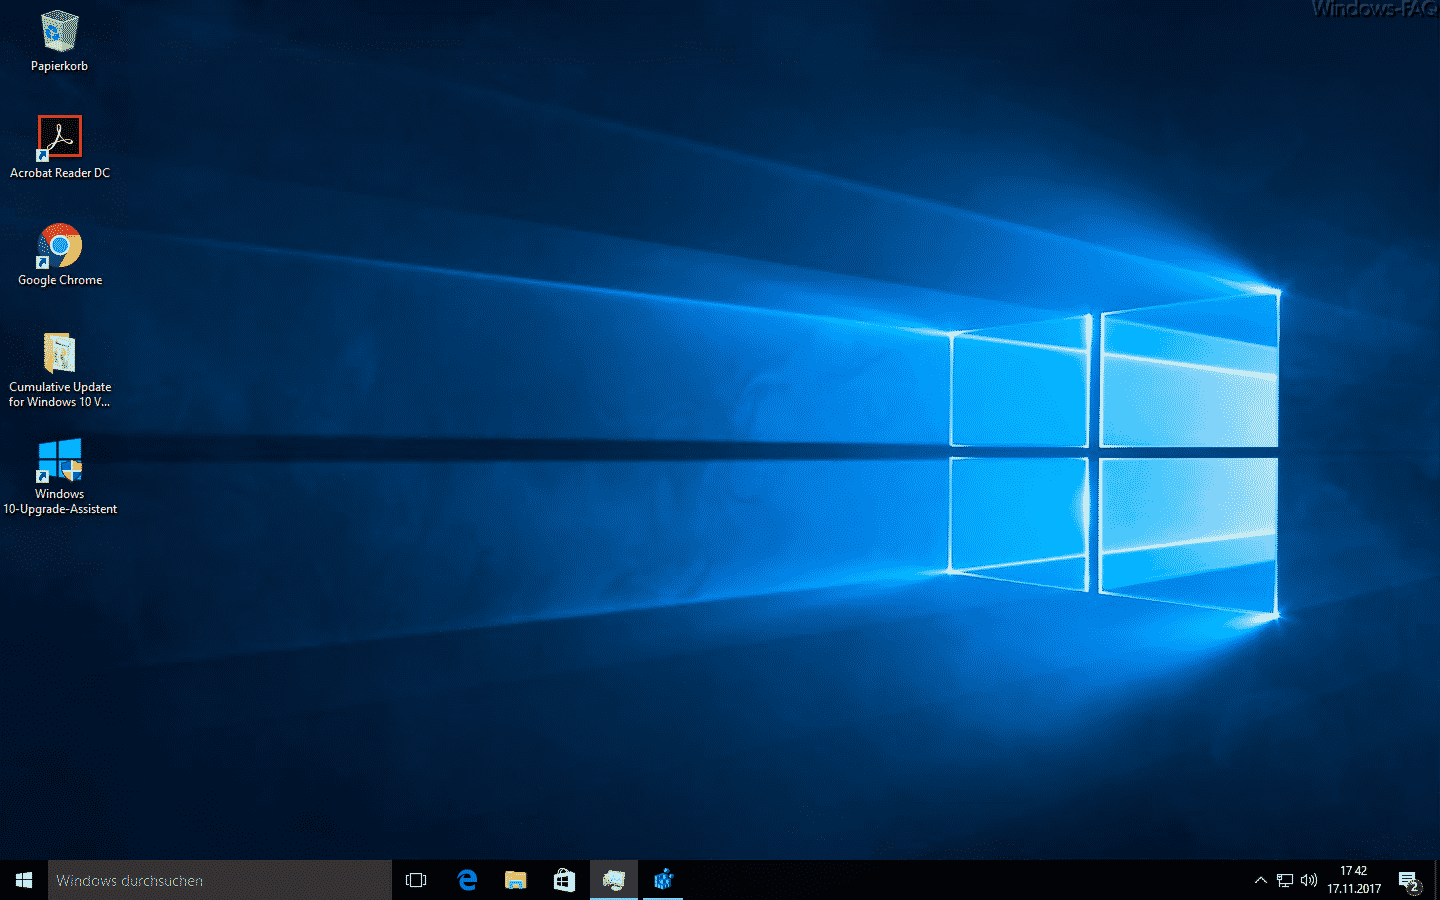 Windows 10 Desktop mit Symbolen